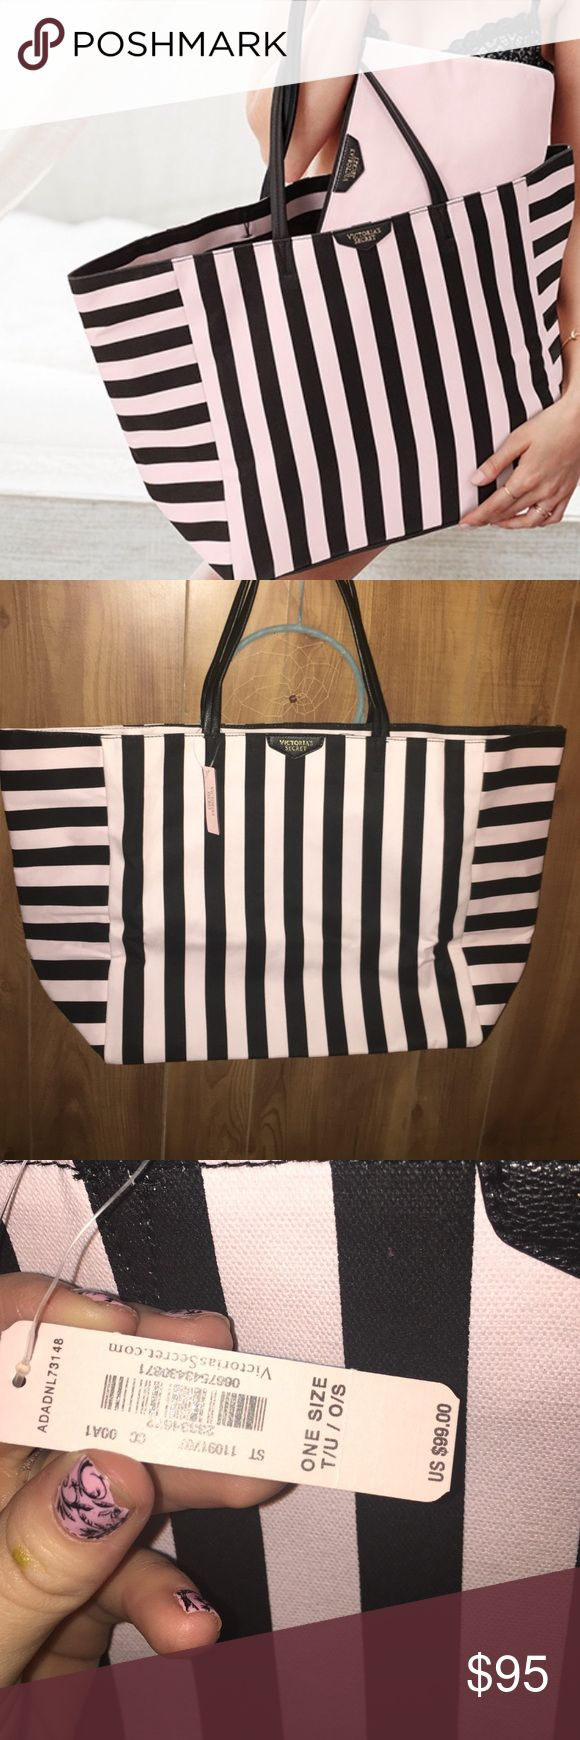 Victoria's Secret tote This bag is so cute and ginormous! Lots of room. (I mean lots of room). Never used, tags still attached! No trades! Price firm! Comes with matching pouch Victoria's Secret Bags Totes